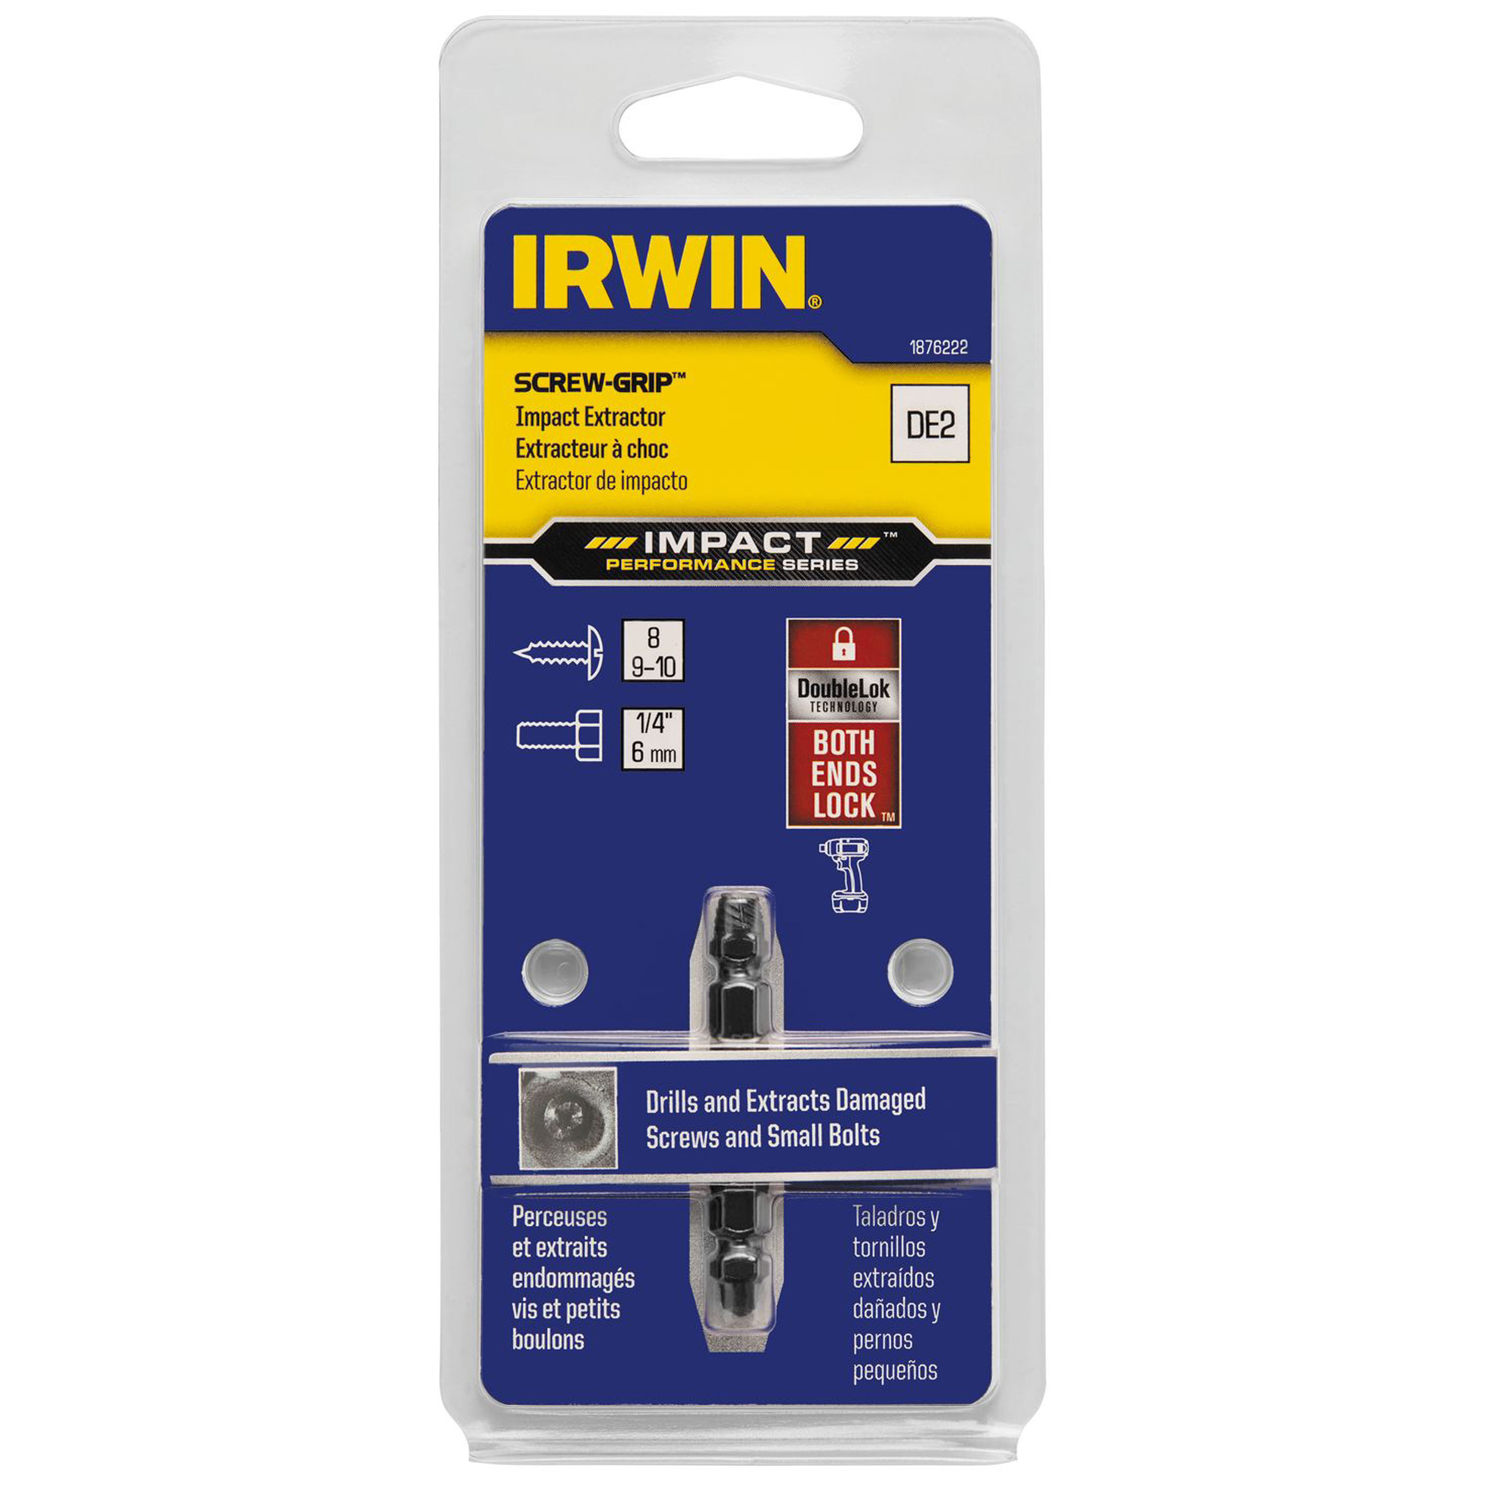 Irwin  Impact SCREW-GRIP  .15 in.  M2 High Speed Steel  Double-Ended Screw Extractor  2 in. 1 pc.